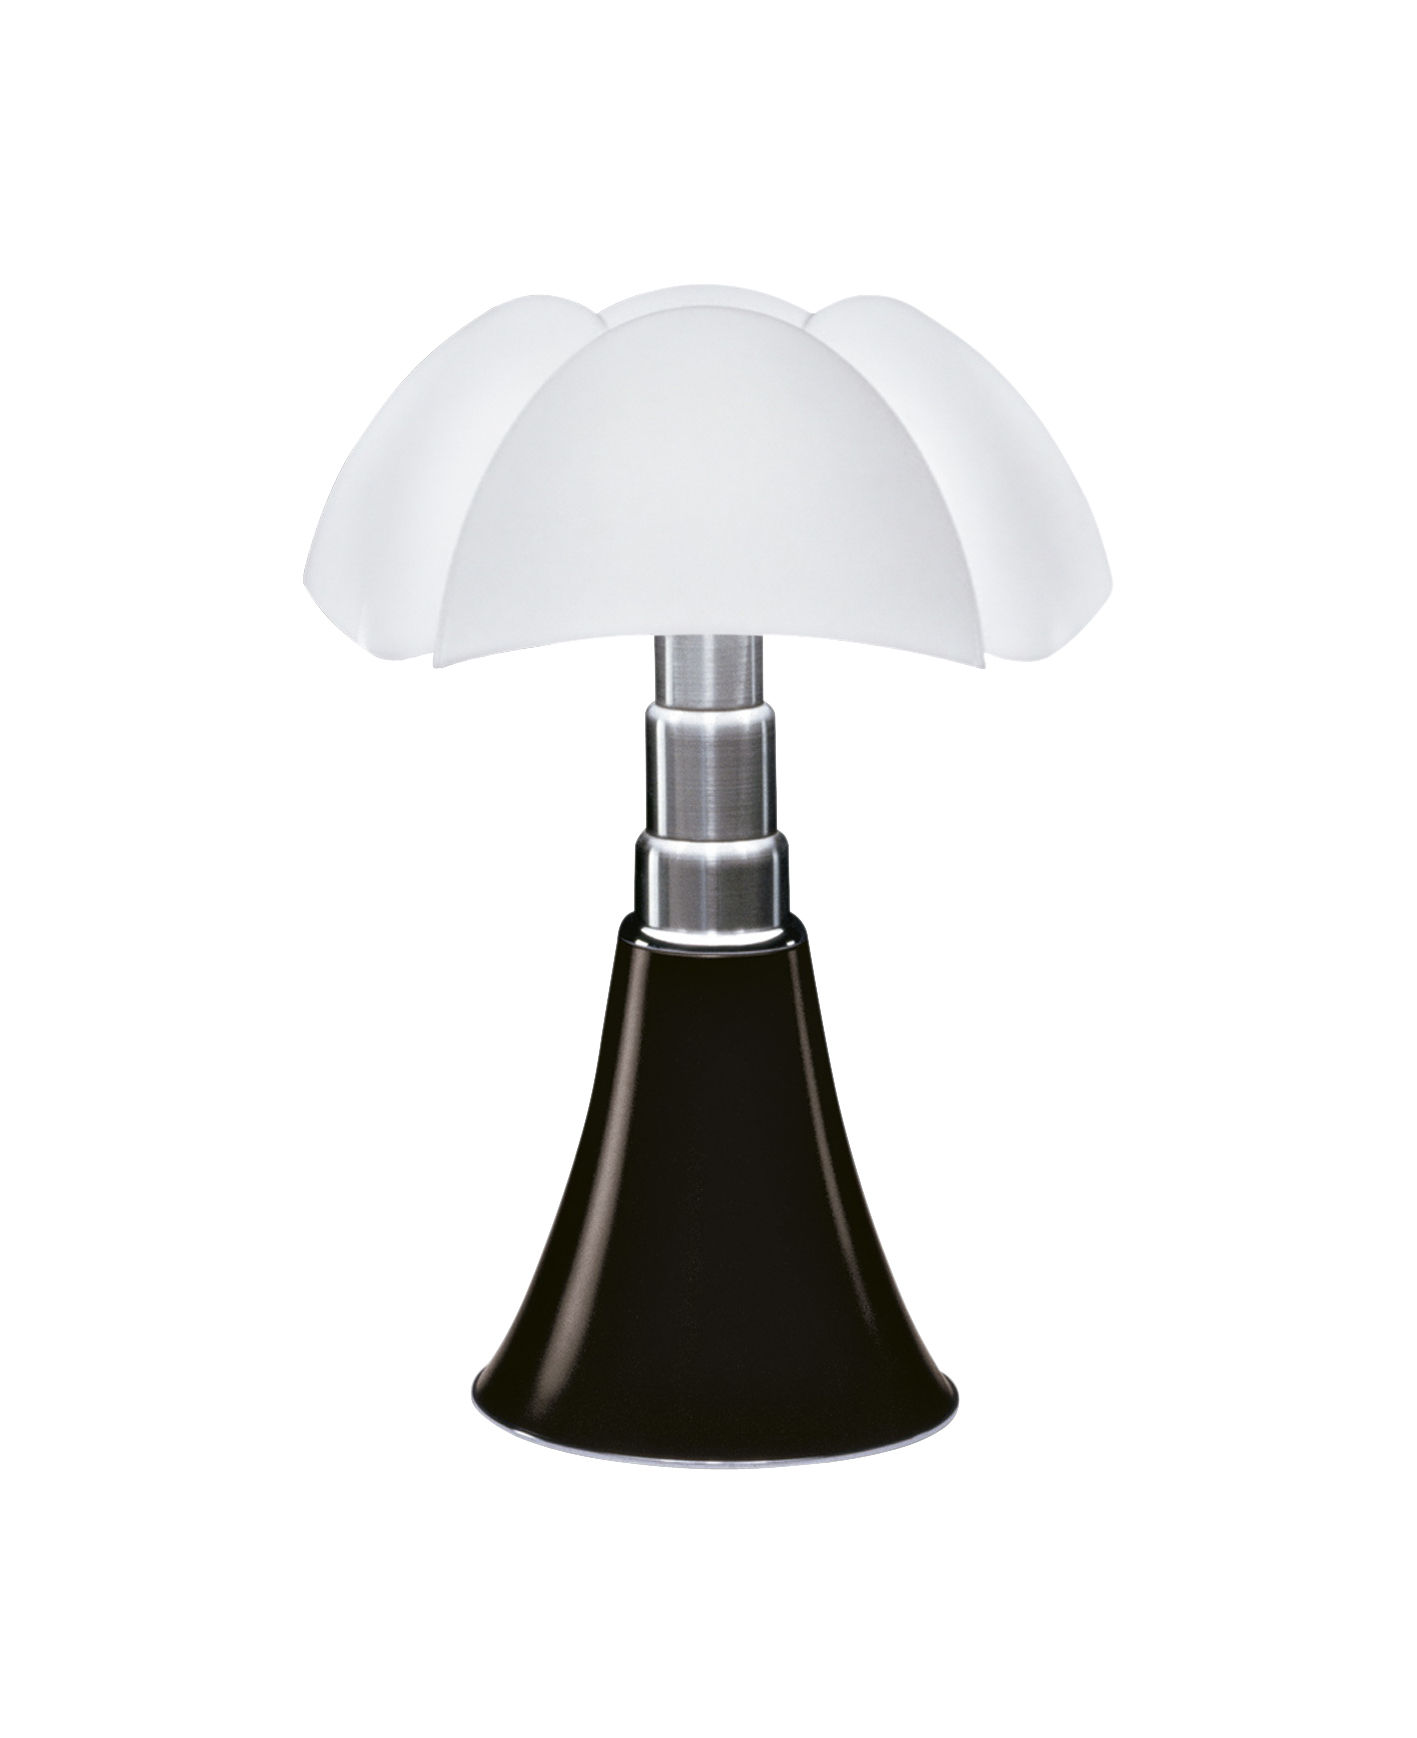 Lampe De Designer Lampe De Table Minipipistrello Led Martinelli Luce